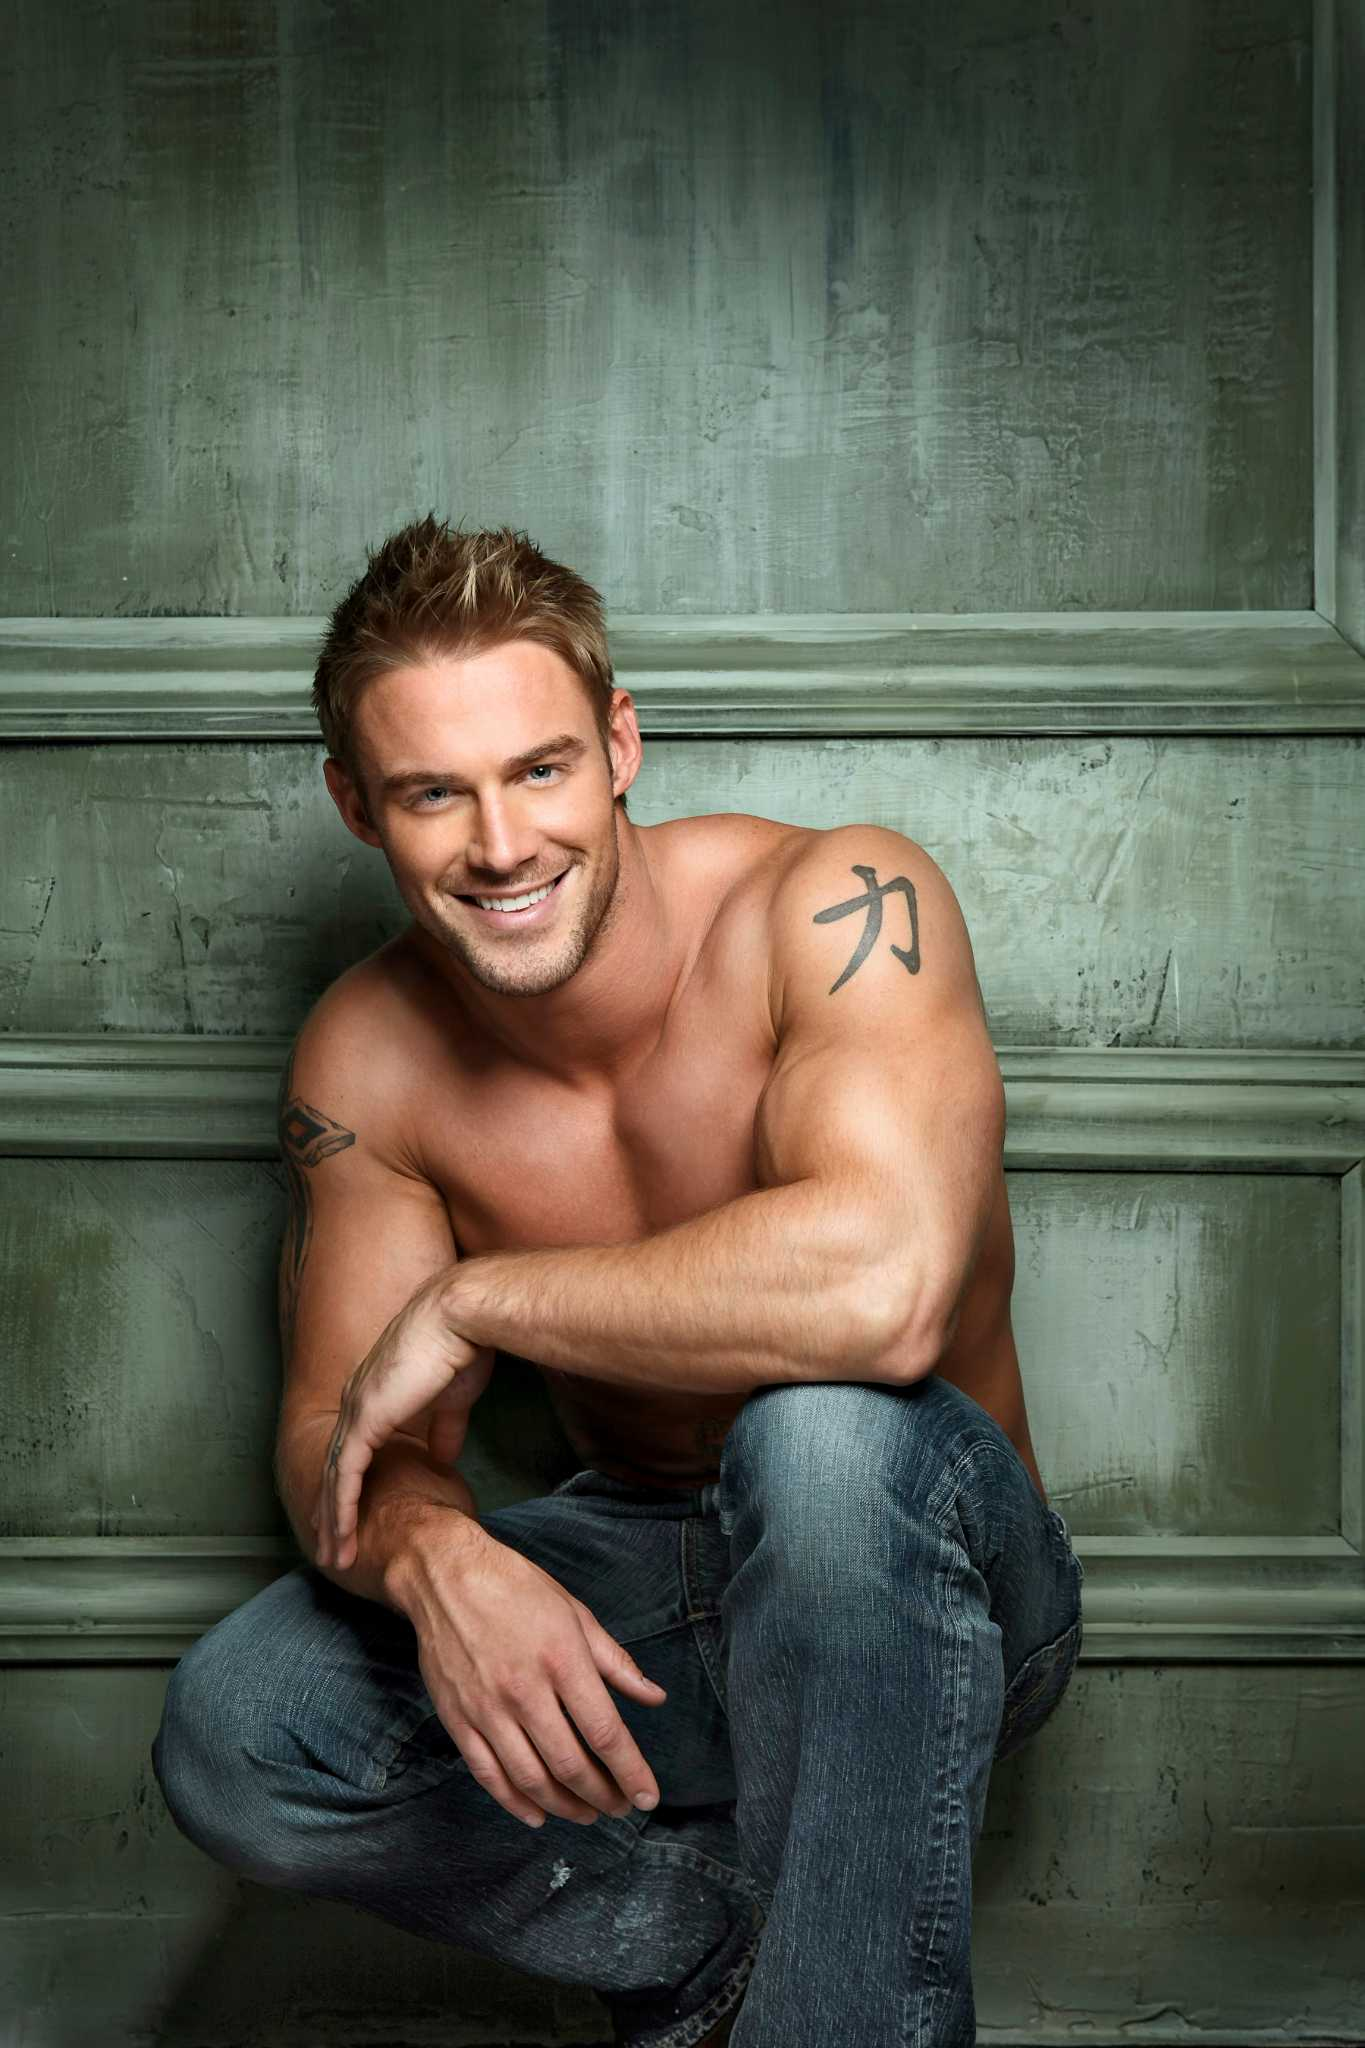 jessie pavelkajessie pavelka facebook, jessie pavelka twitter, jessie pavelka imgrum, jessie pavelka instagram, jessie pavelka, jessie pavelka wife, jessie pavelka diet plan, jessie pavelka married, jessie pavelka calendar, jessie pavelka workout, jessie pavelka and sitara hewitt, jessie pavelka height, jessie pavelka images, jessie pavelka youtube, jessie pavelka family, jessie pavelka wiki, jessie pavelka pictures, jessie pavelka married sitara hewitt, jessie pavelka 2015, jessie pavelka height and weight